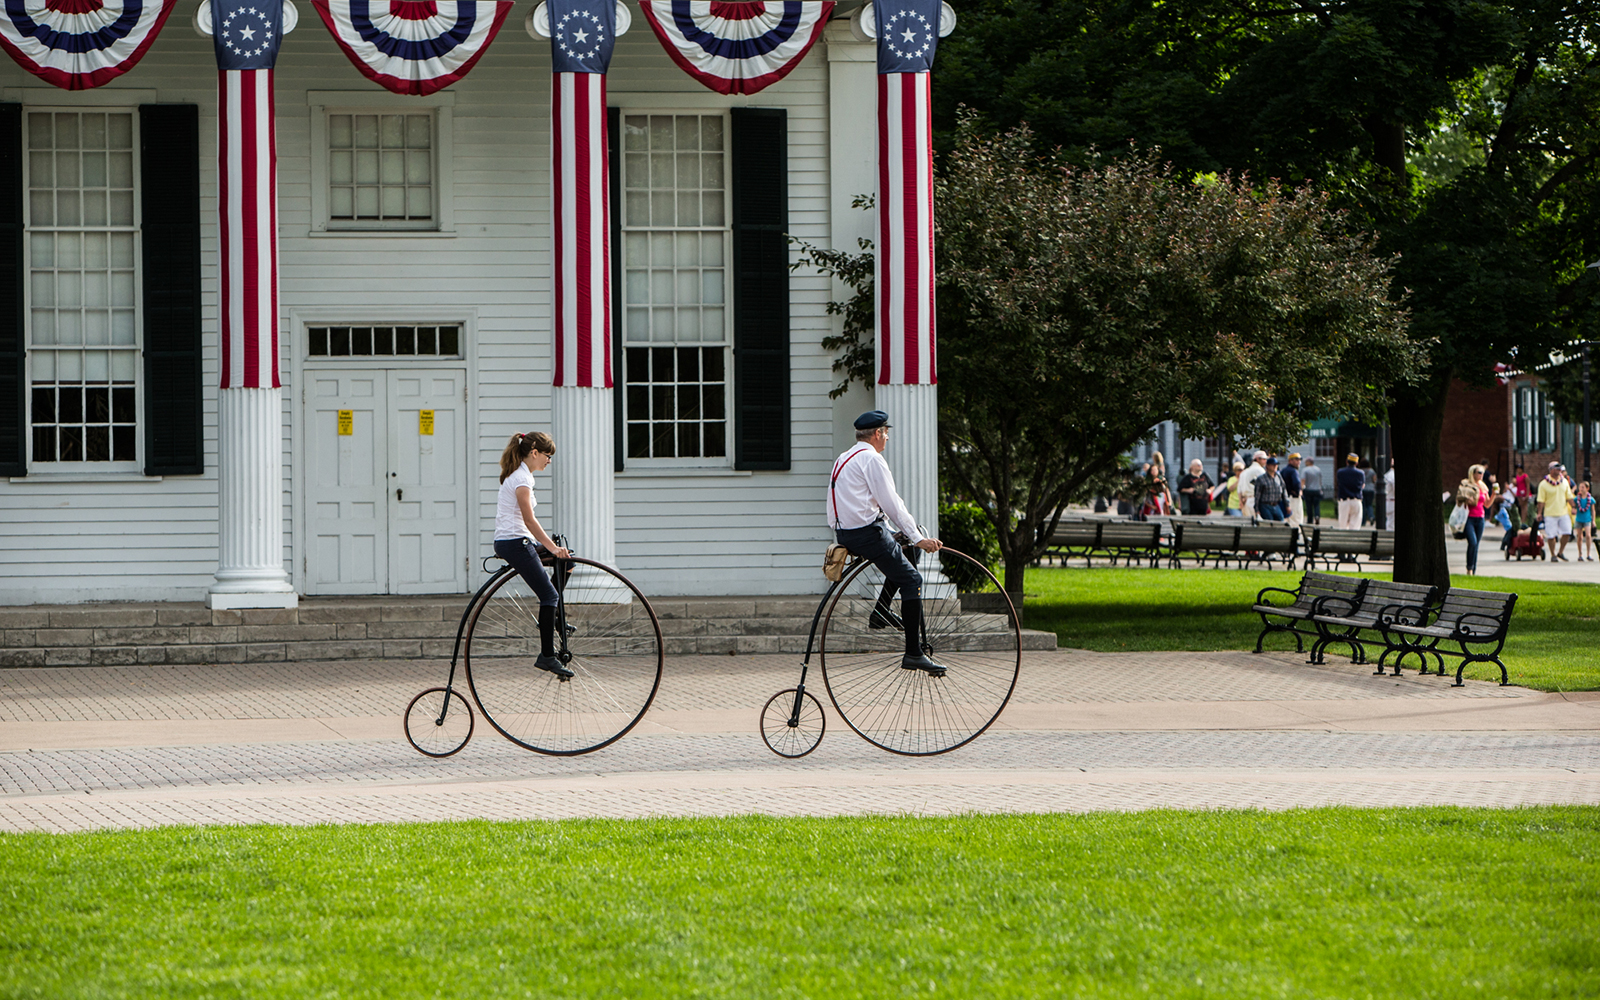 The Country's Best July 4 Celebrations: Detroit, Michigan